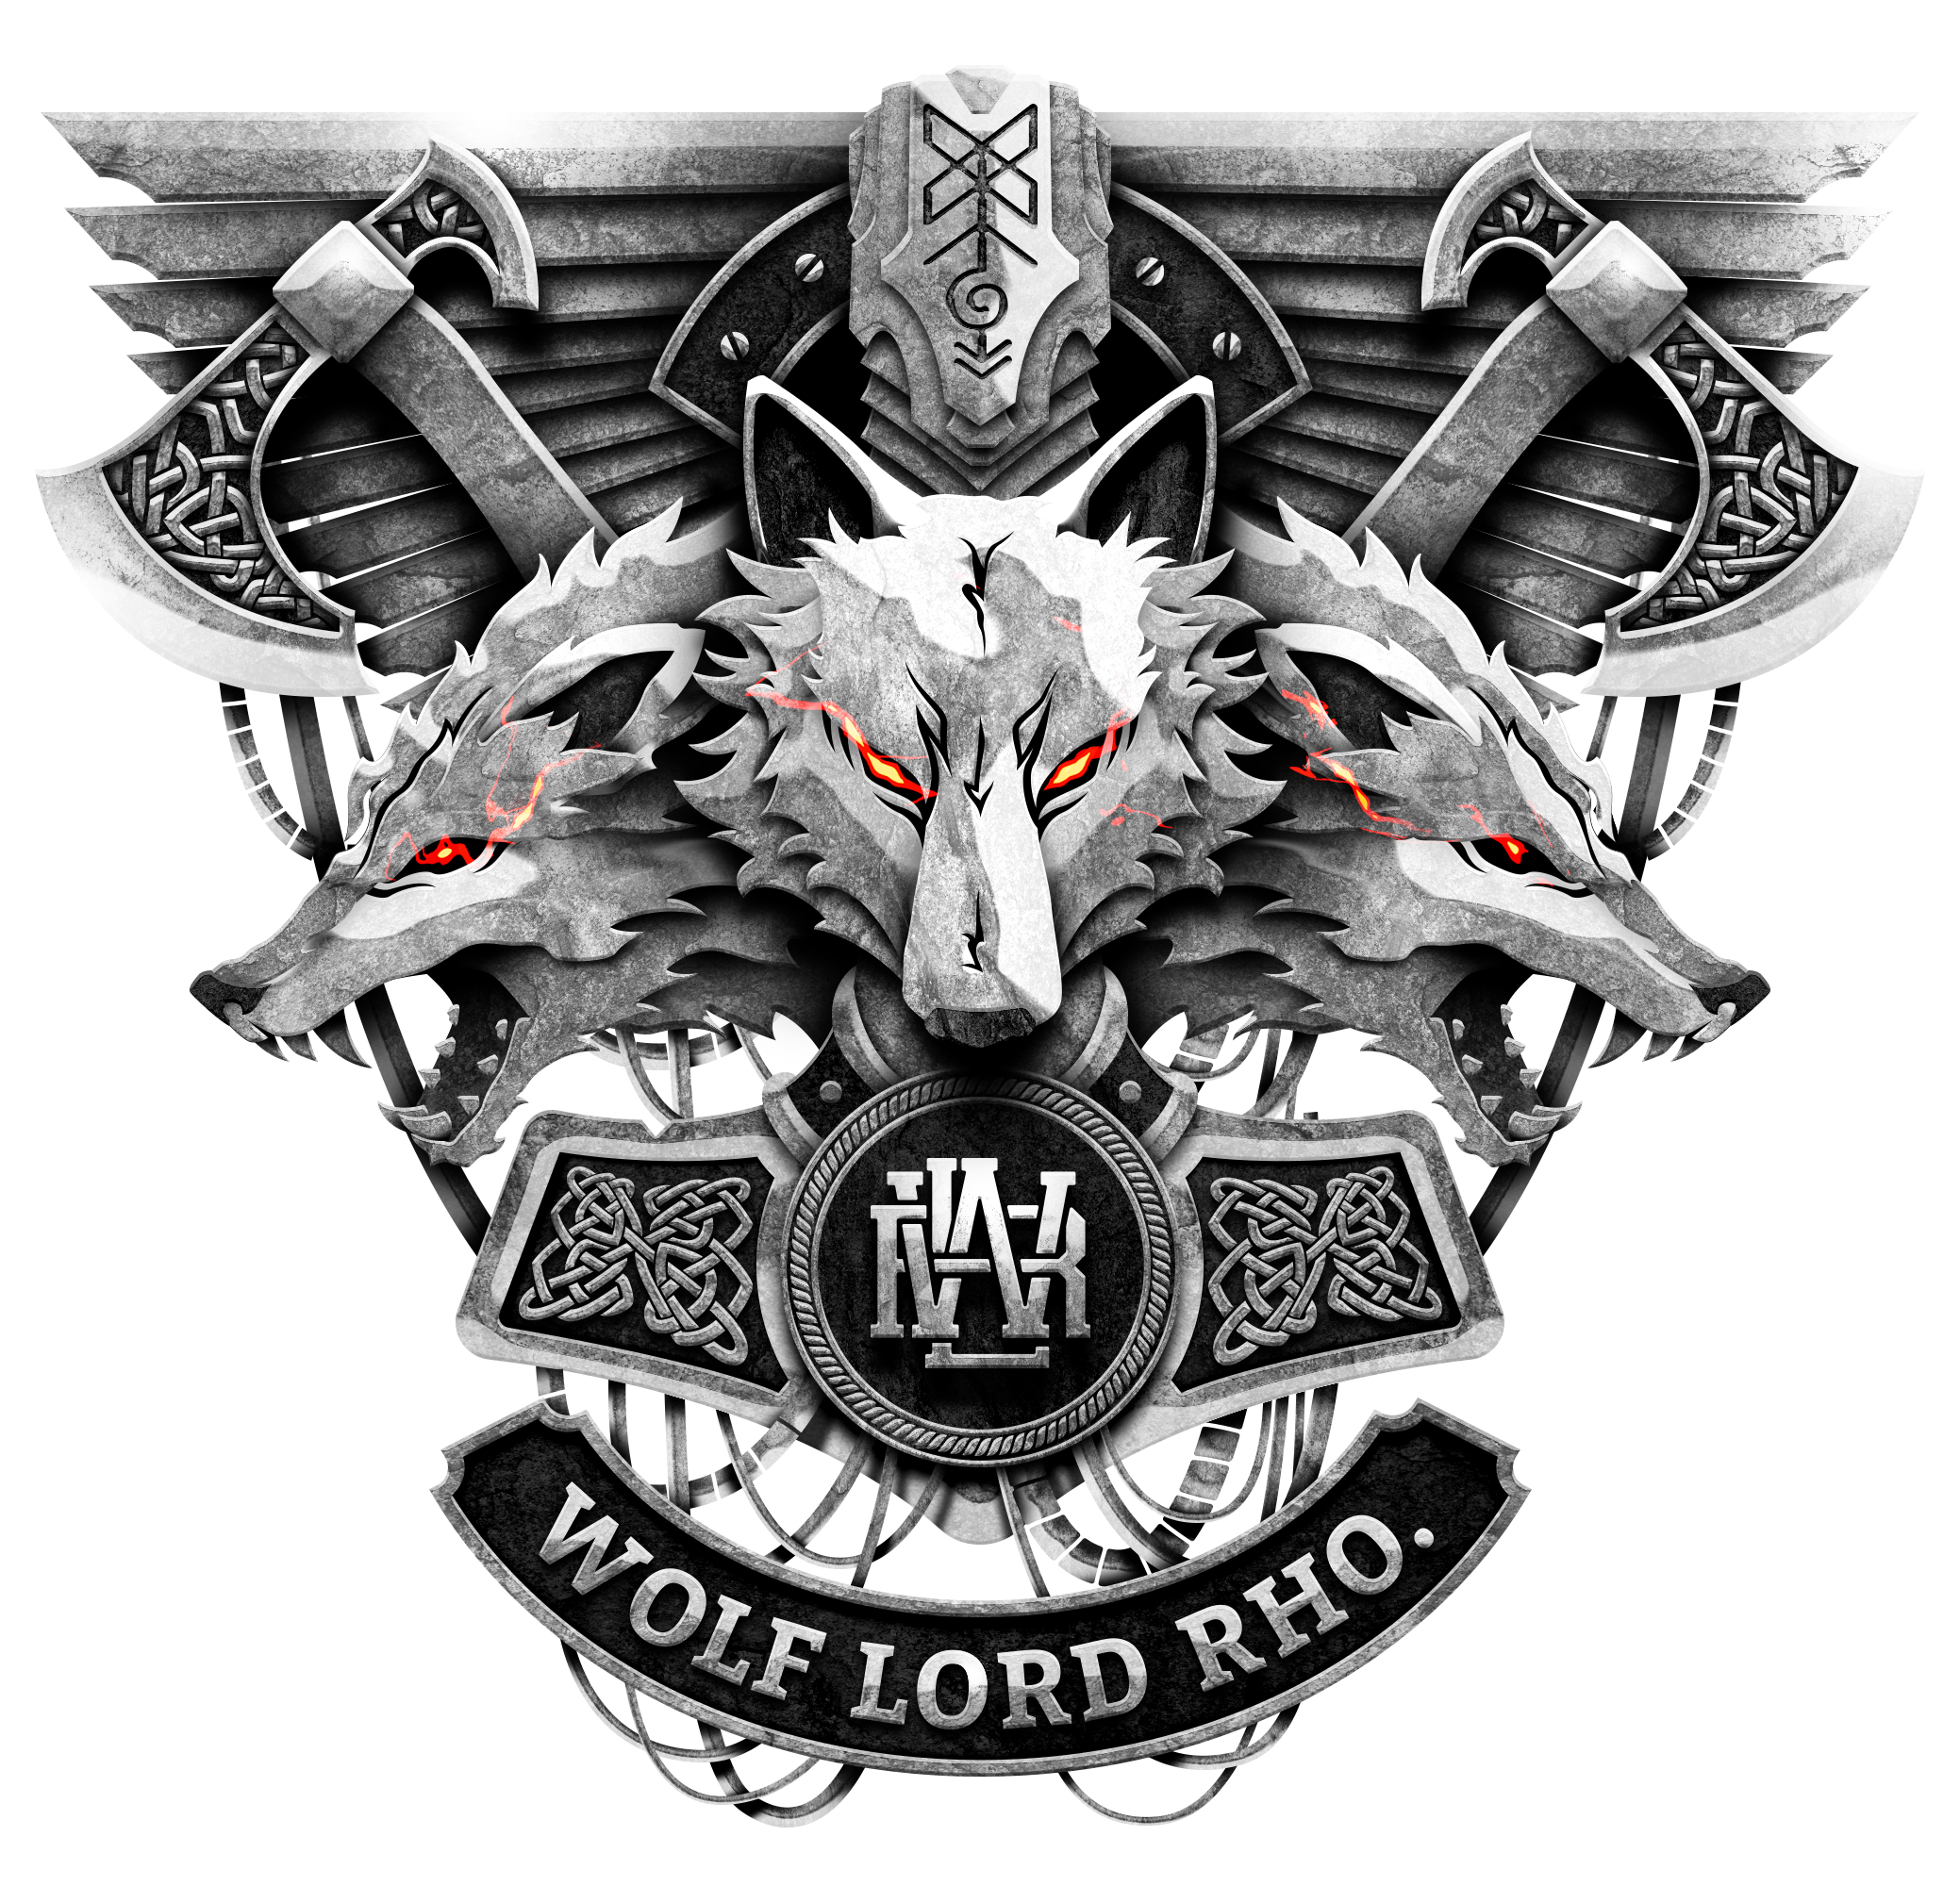 Iconic Wolf Lord Rho Logo Design Needed